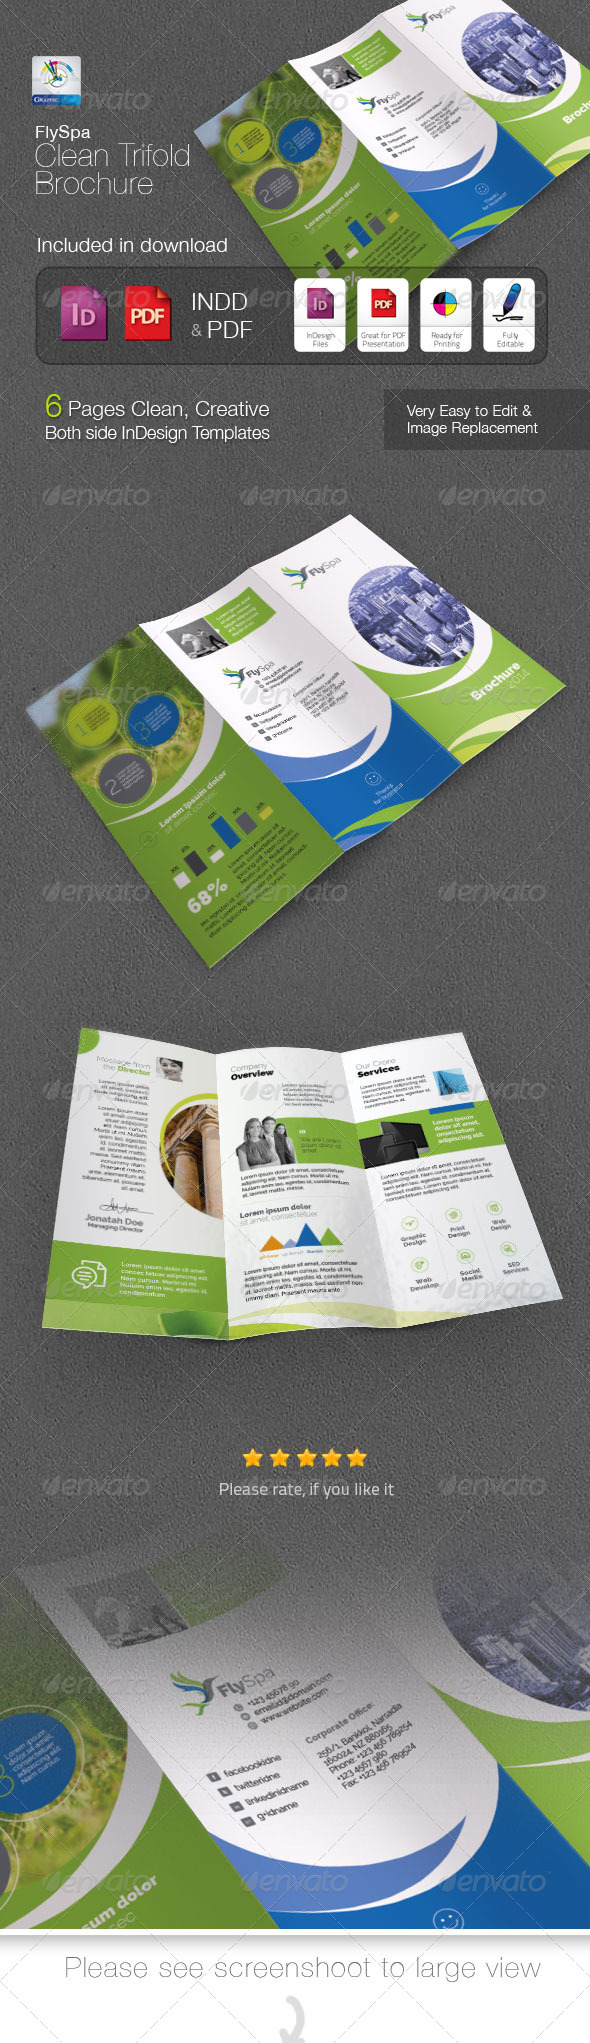 GraphicRiver FlySpa Clean Trifold Brochure 5422676